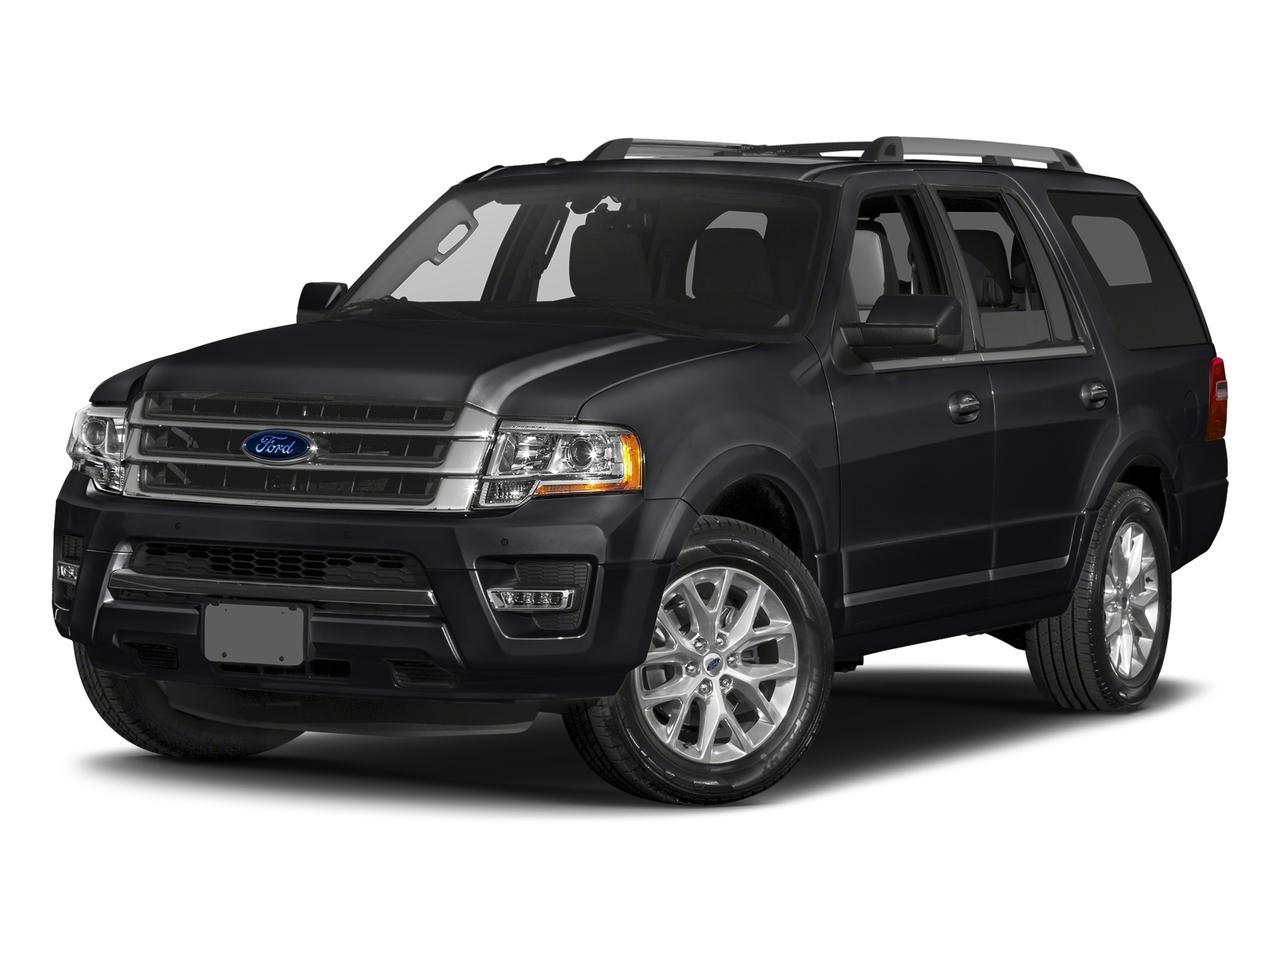 2017 Ford Expedition Vehicle Photo in Boyertown, PA 19512